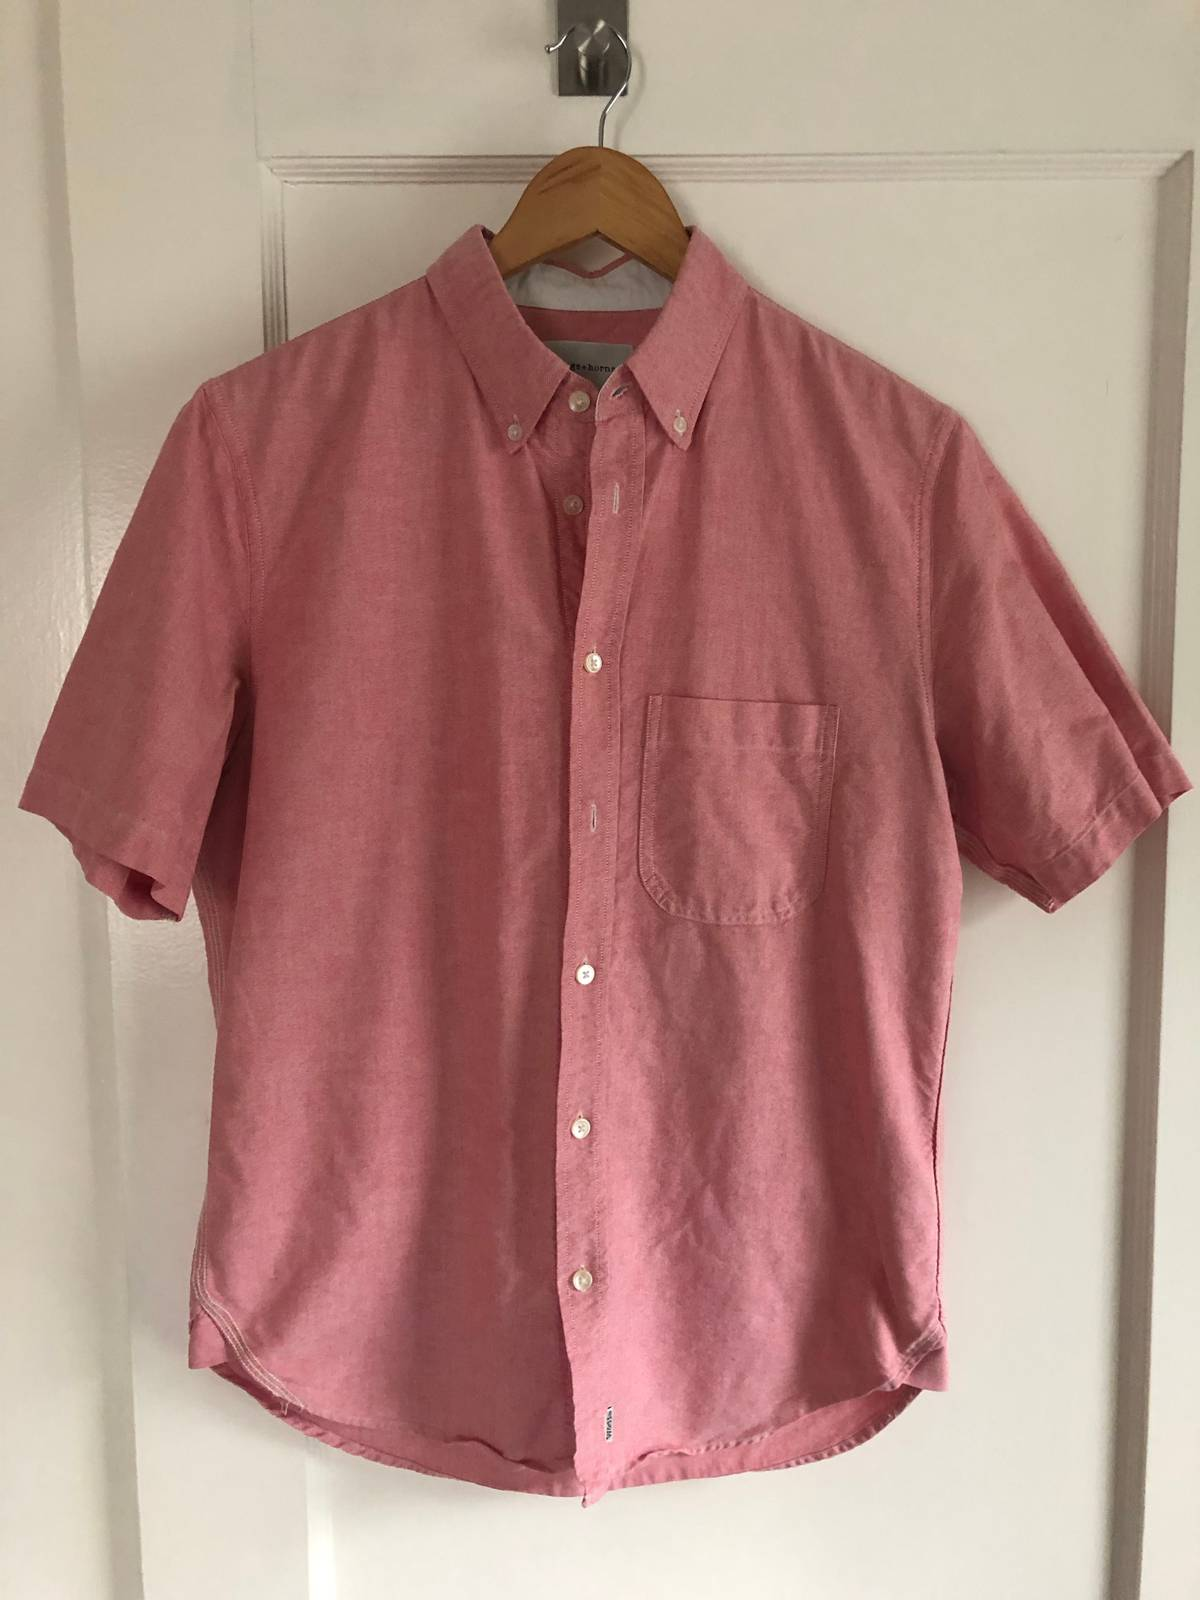 Wings Horns Pink Chambray Shirt Size M Shirts Button Ups For